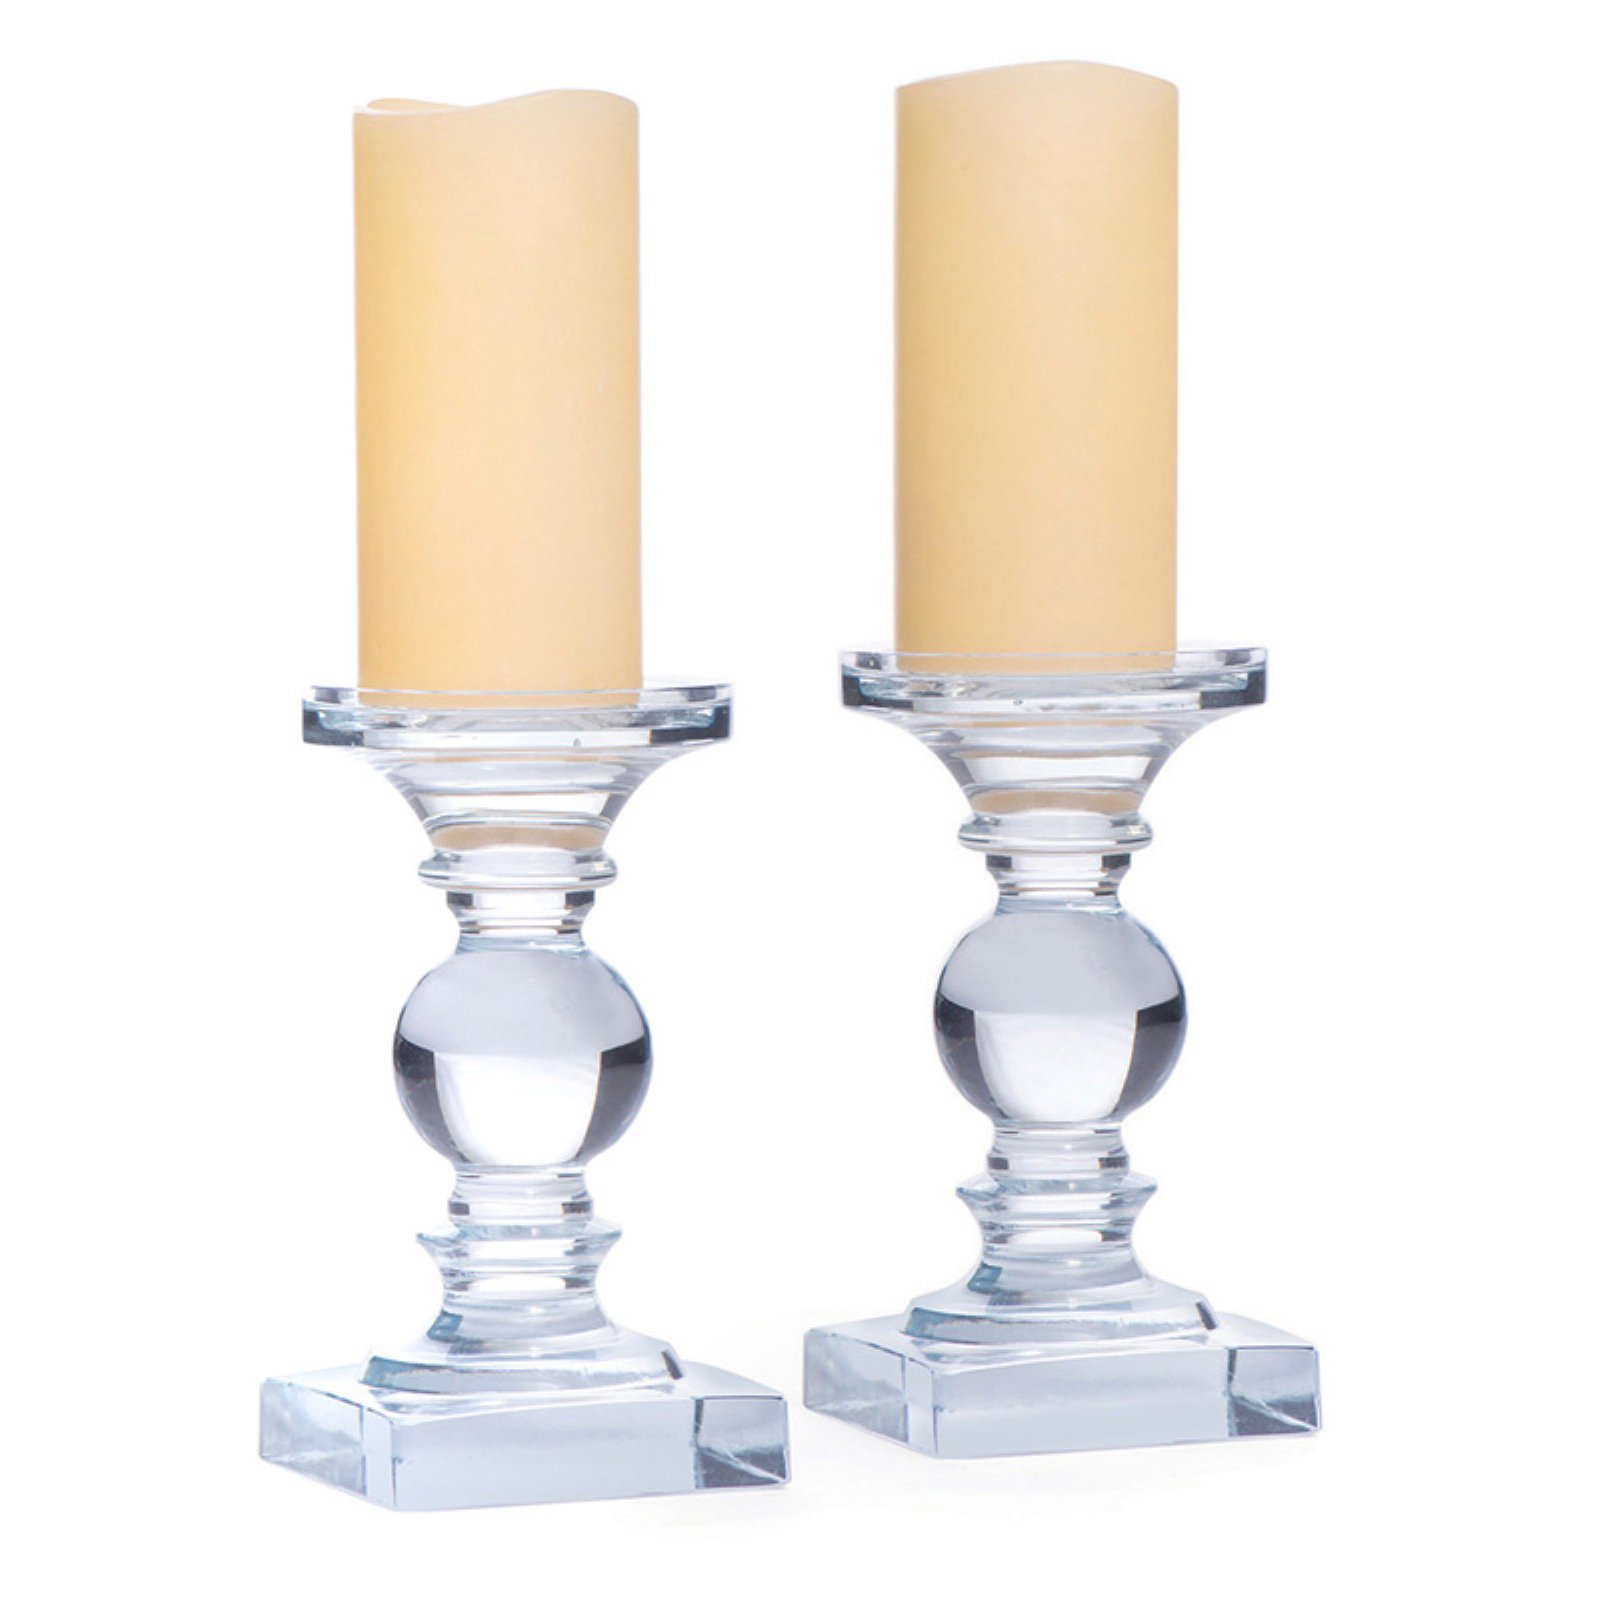 Hip Vintage Monroe Candle Holder - Set of 2